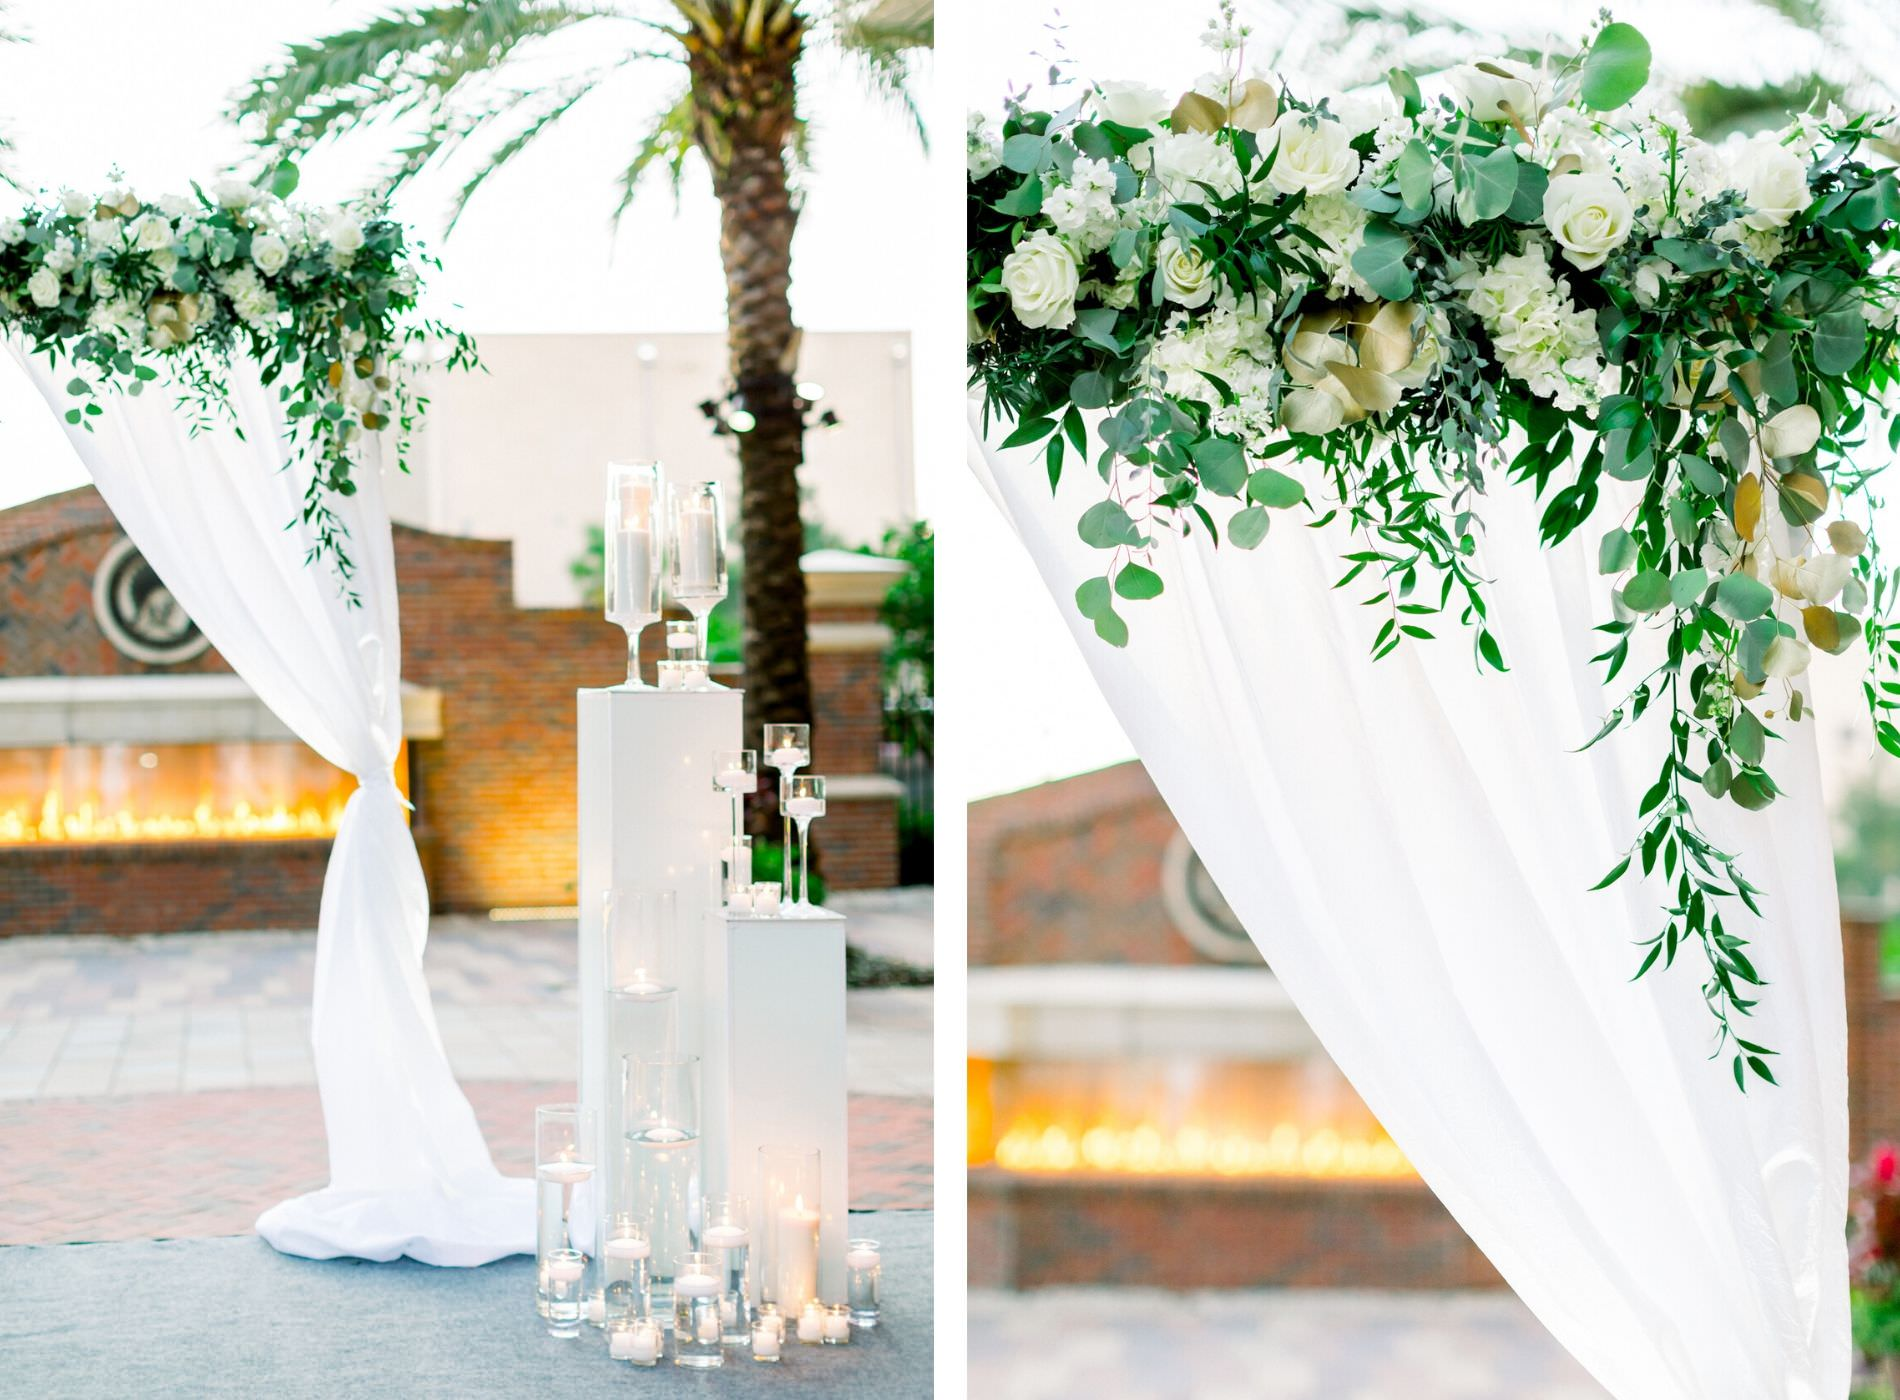 Elegant Classic Wedding Ceremony Decor, White Draped Arch with Greenery and White Roses and Hydrangeas, White Pedestals with Floating Candle Vases, Red Brick Fireplace Backdrop | Wedding Photographer Shauna and Jordon Photography | Tampa Wedding Planner UNIQUE Weddings + Events |